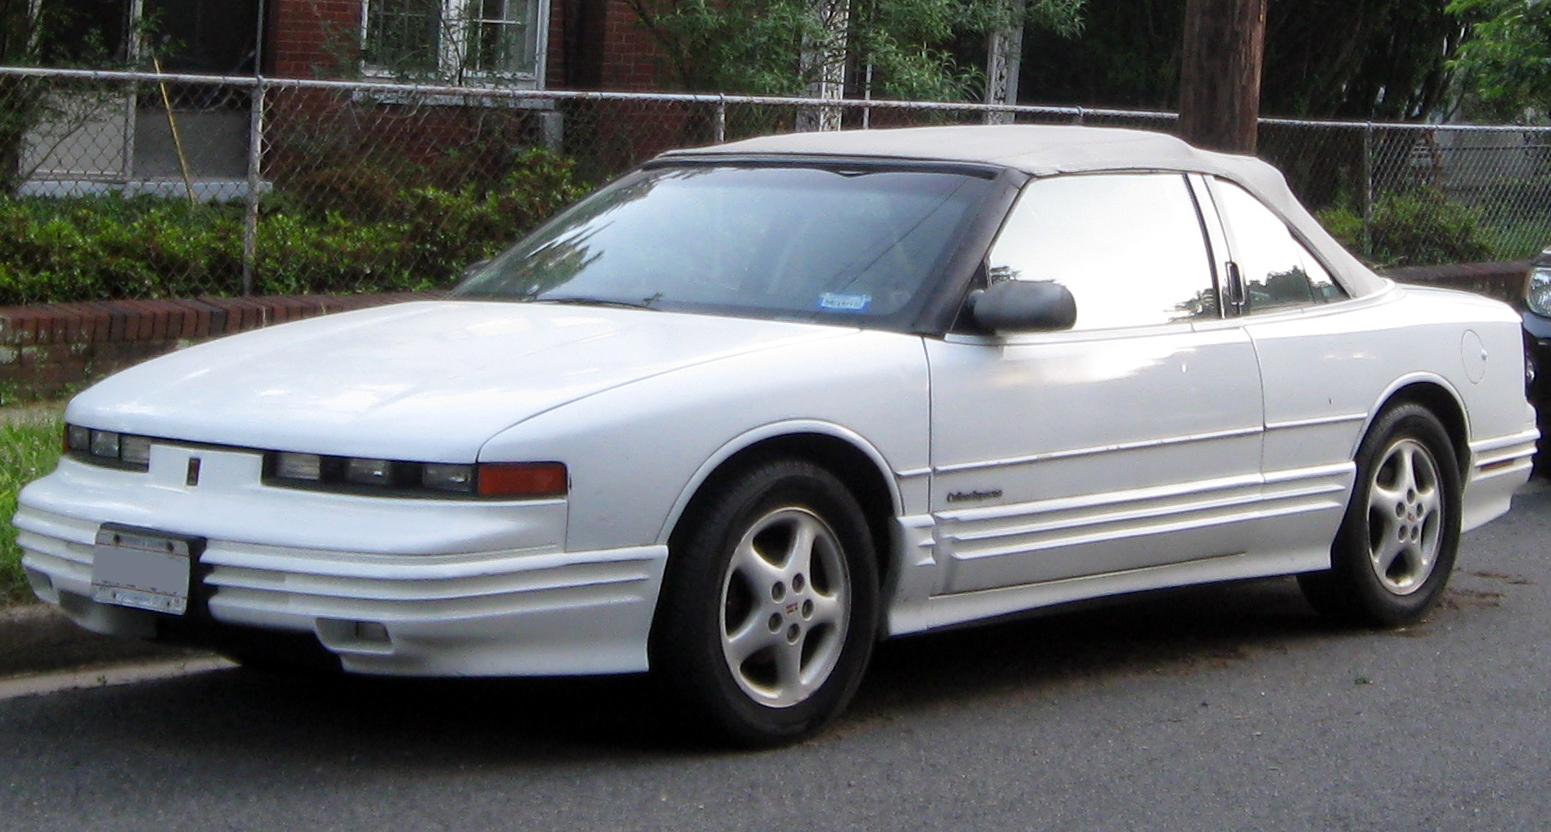 1997 Oldsmobile Cutlass #11